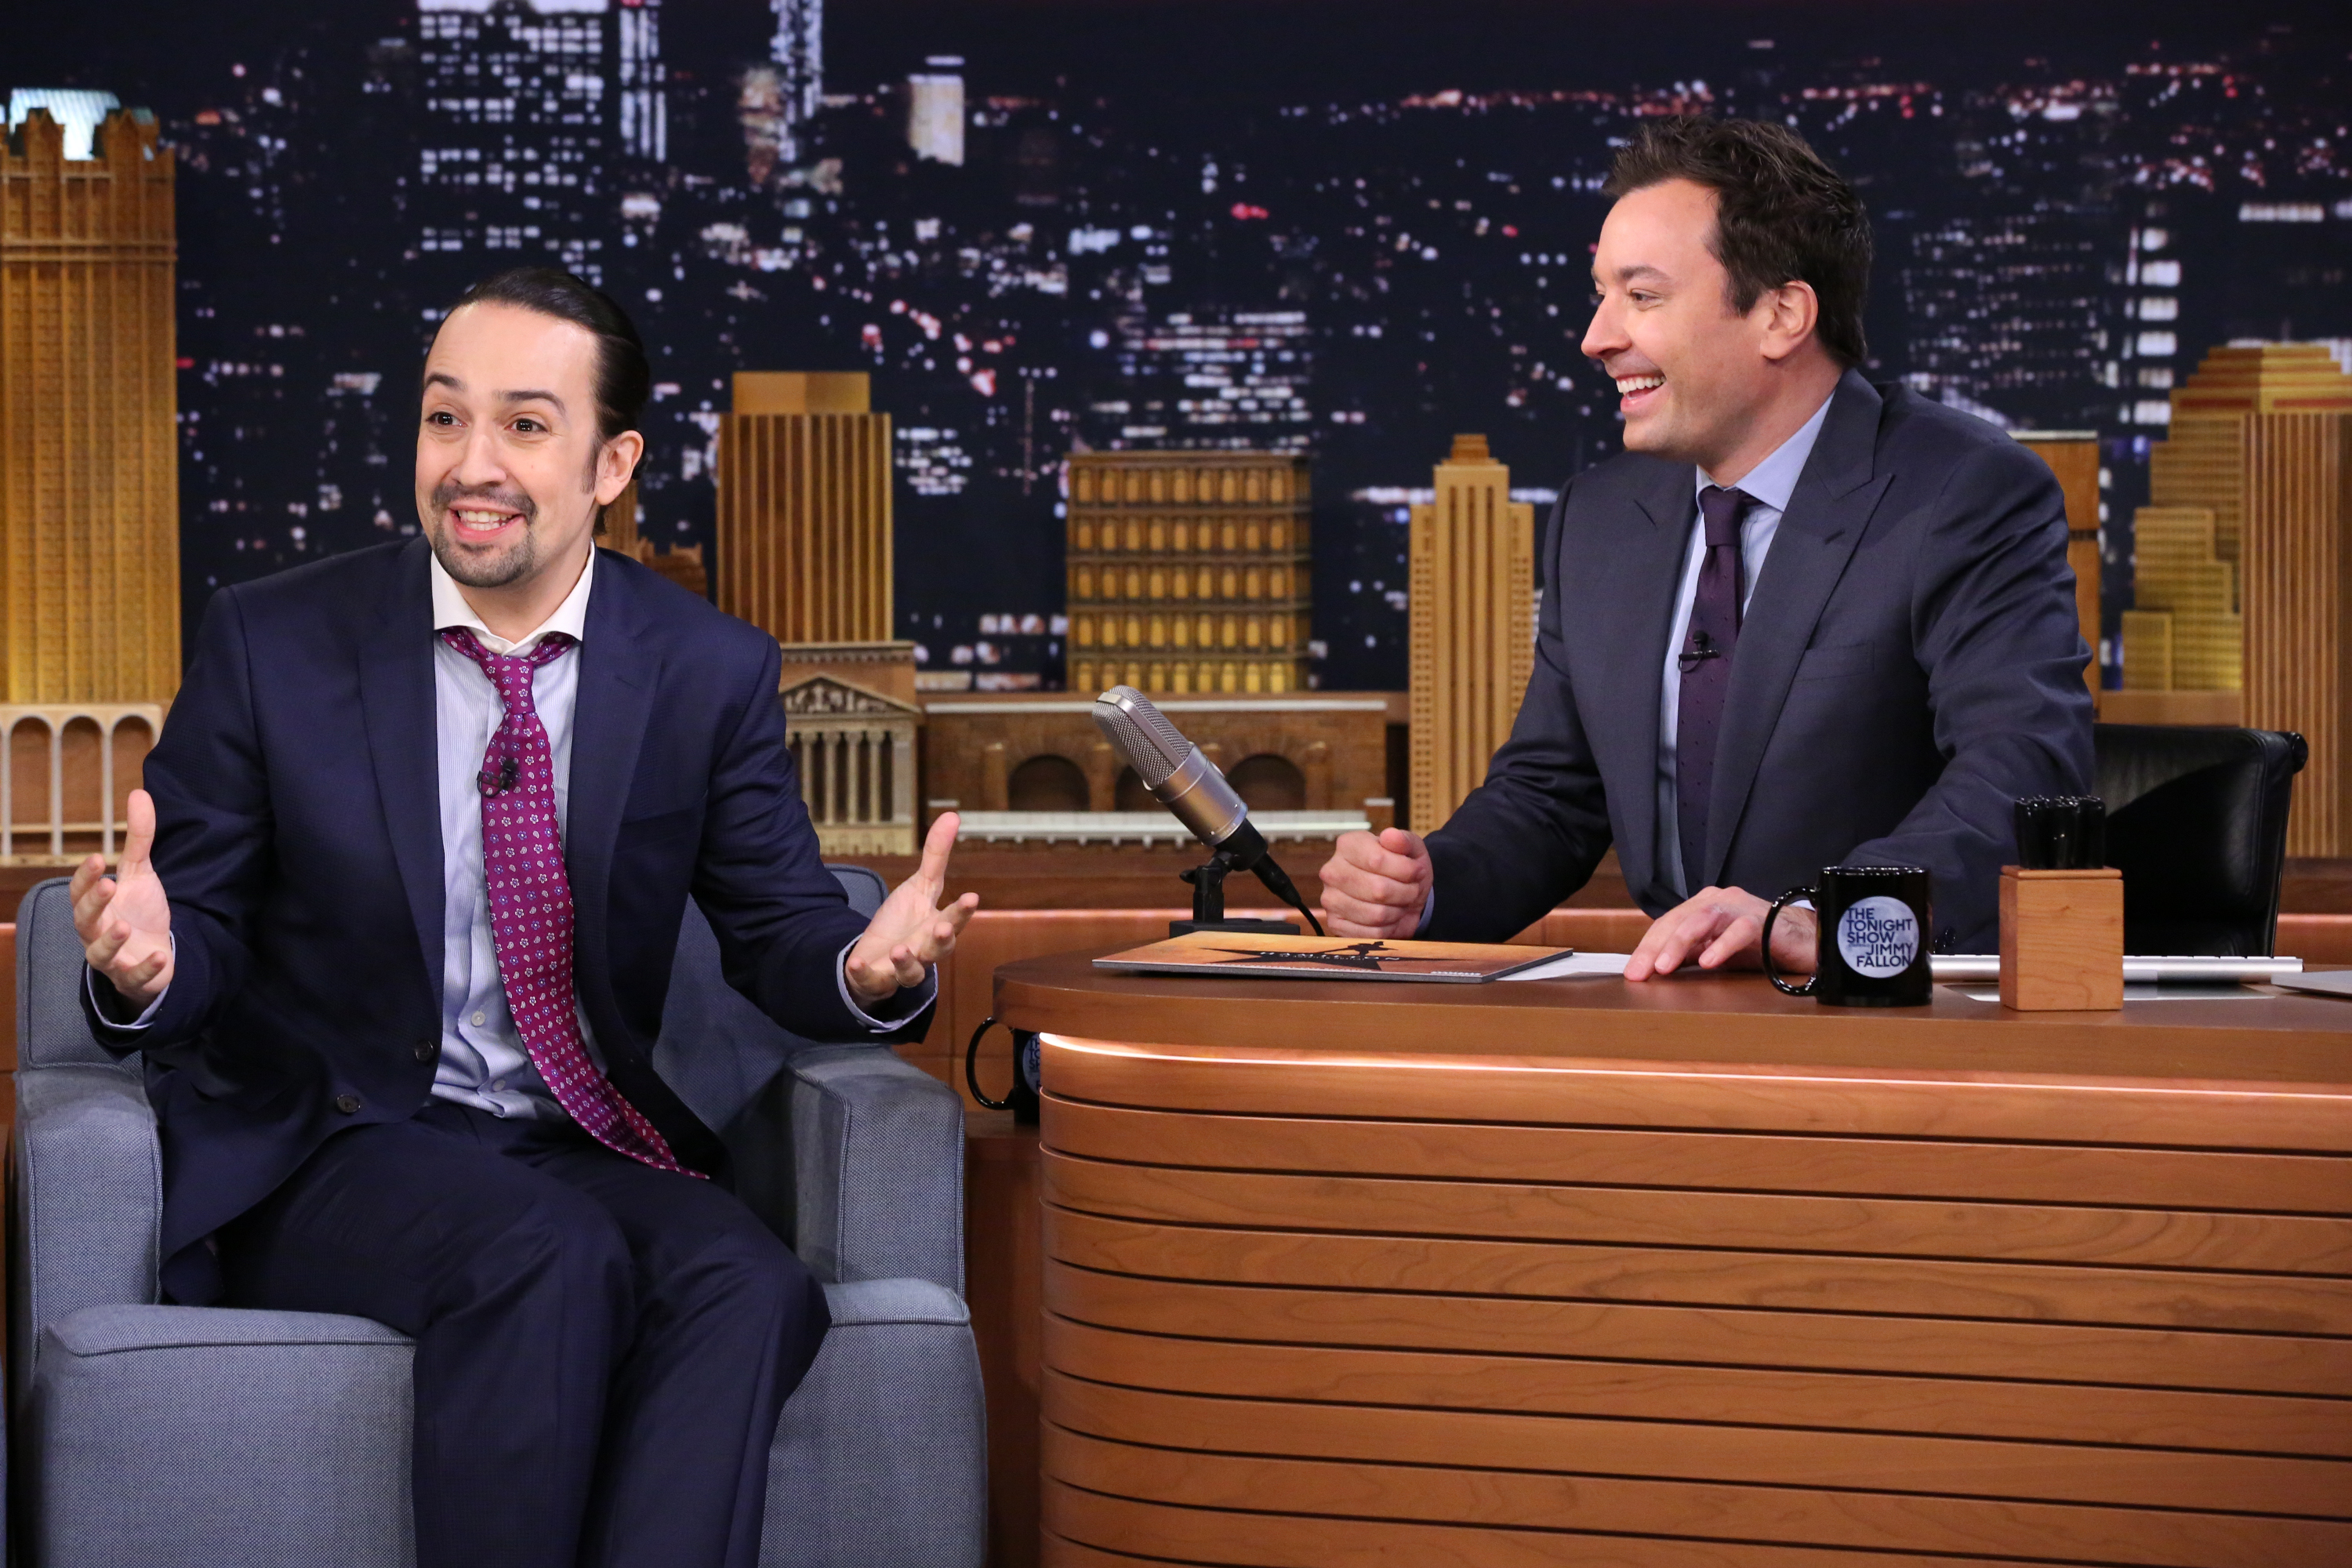 Lin-Manuel Miranda during an interview with host Jimmy Fallon on Nov. 6, 2015.